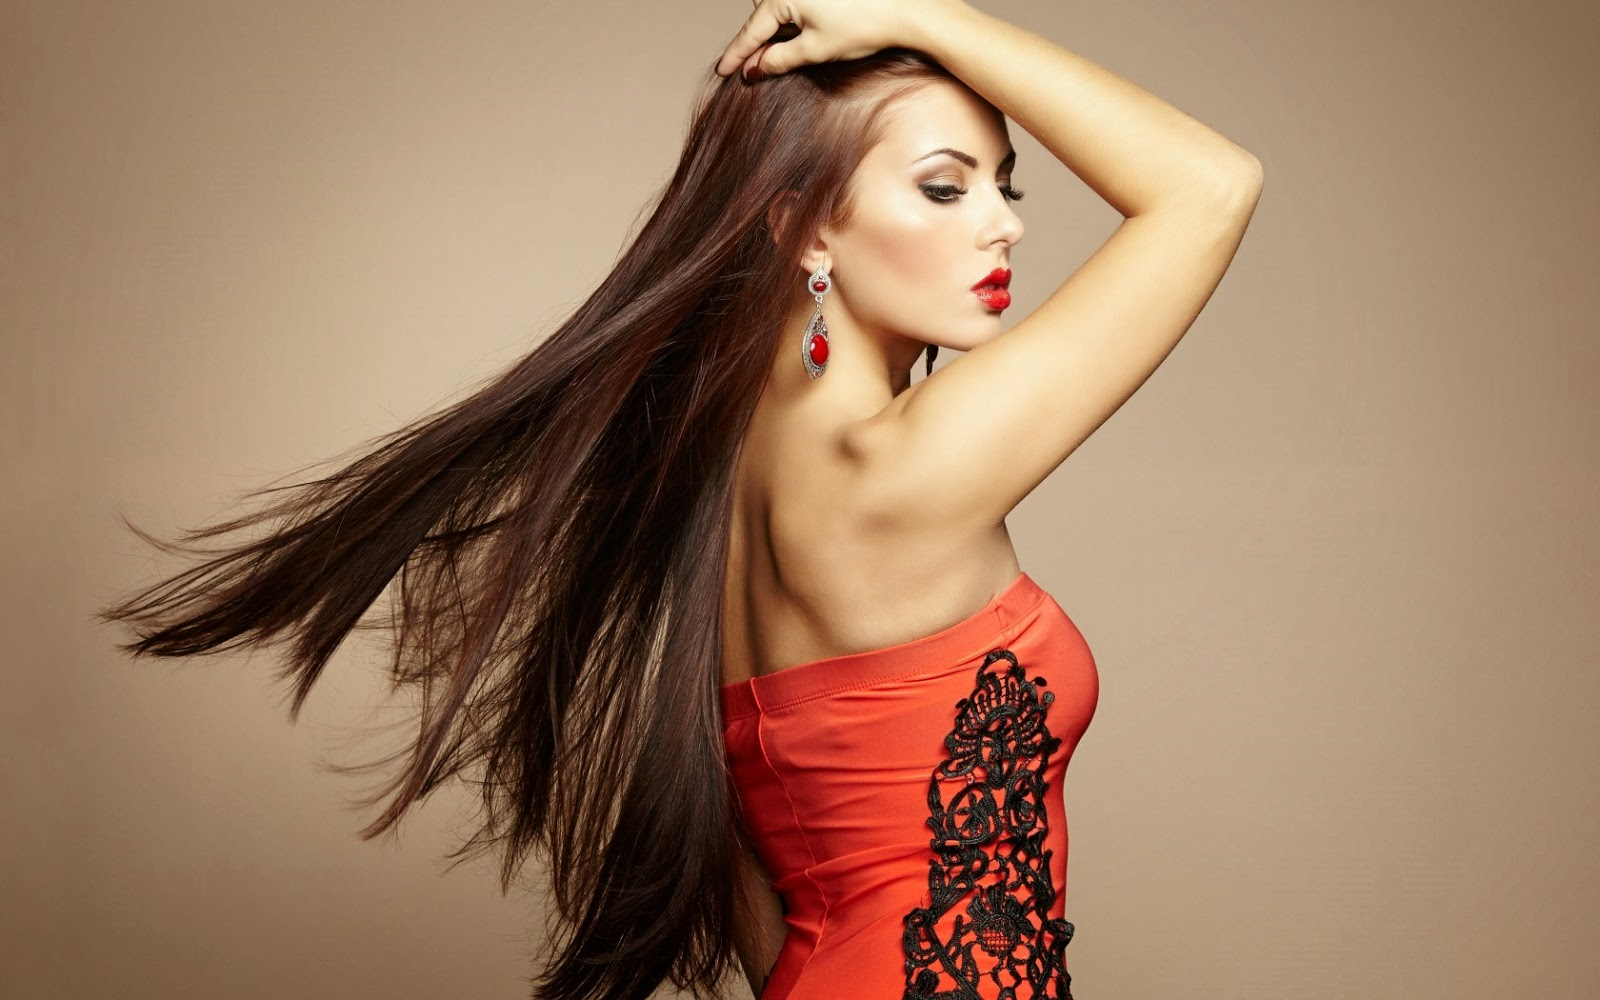 Model Girl Hairstyle   Hot HD Wallpapers 2014-2015